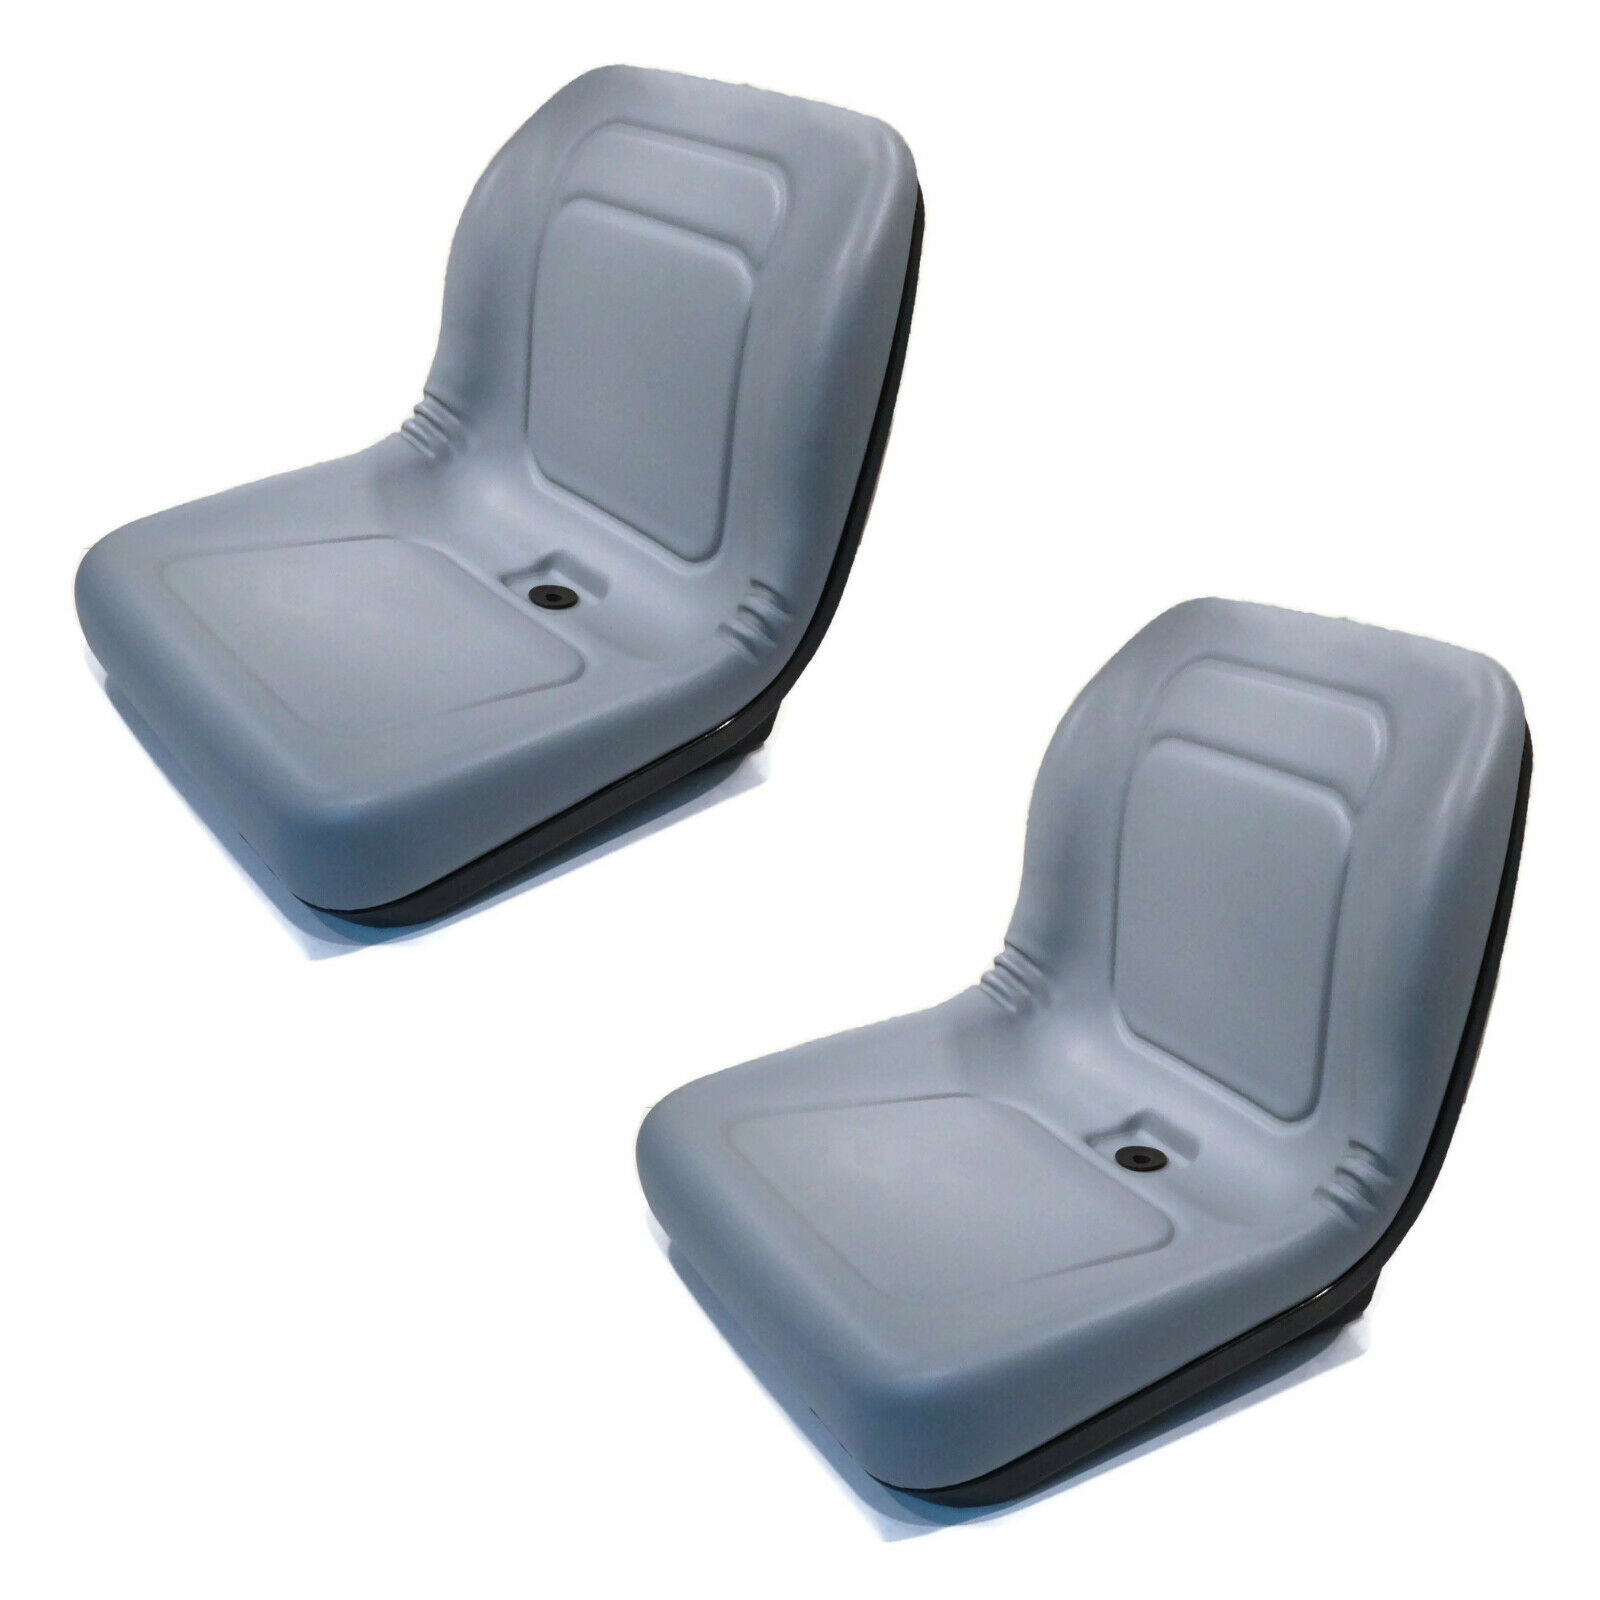 HIGH BACK SEATS for Toro Workman MD HD 2100 2300 4300 UTV Utility Vehicle by The ROP Shop 2